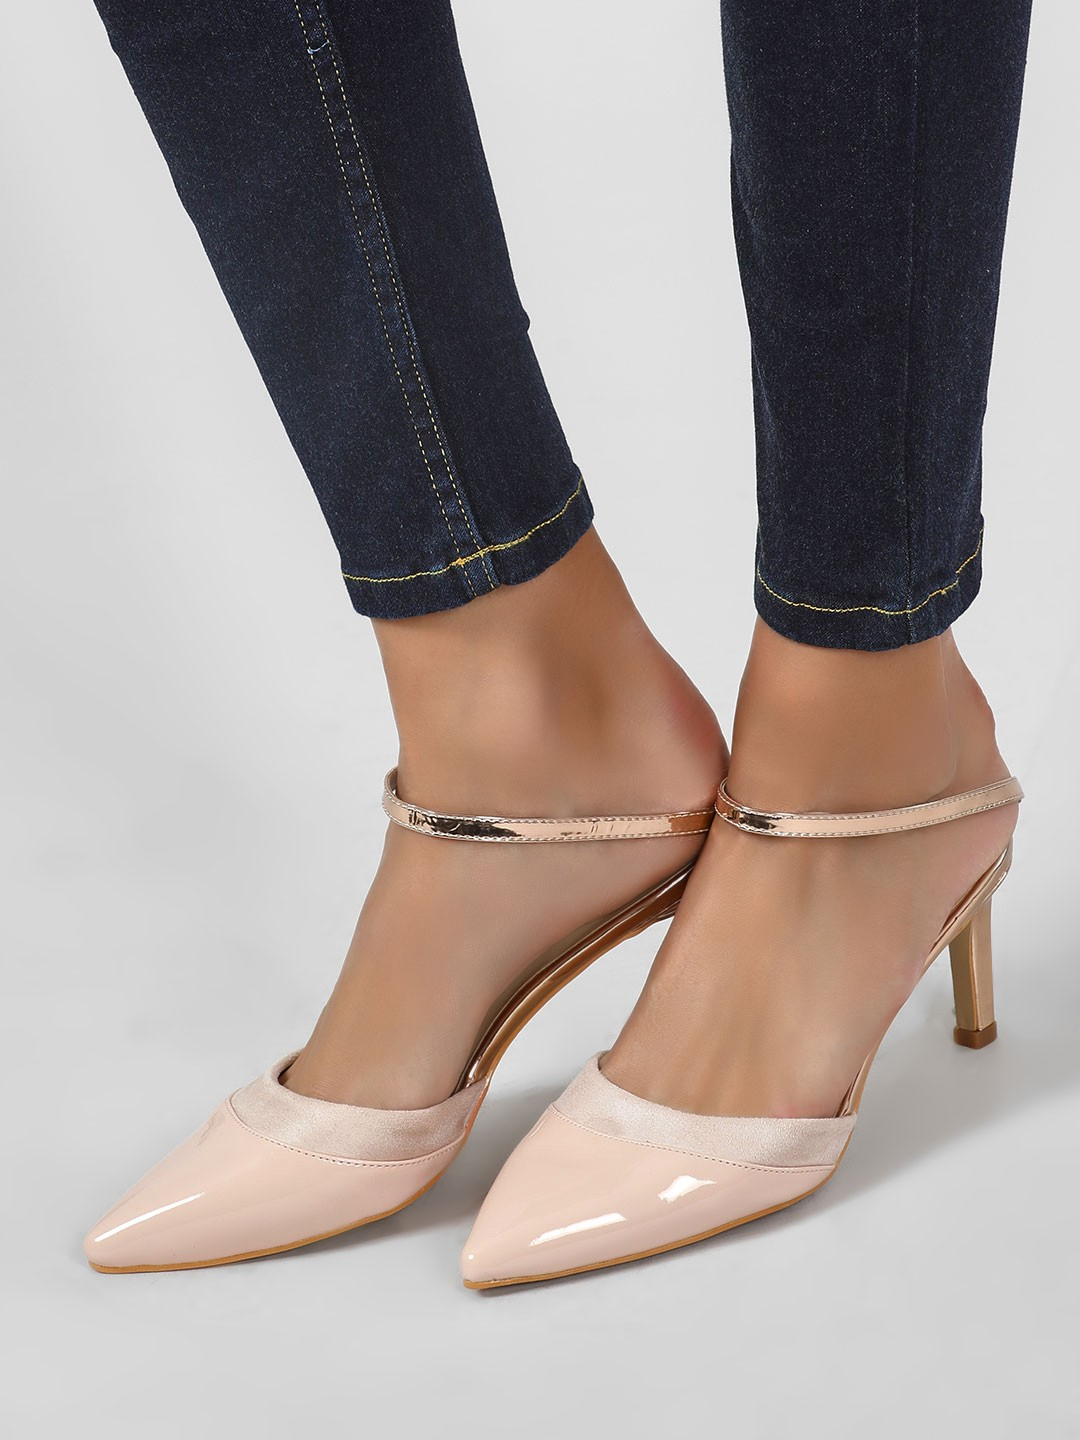 Intoto Nude Pointed Toe Slip On Heels 1